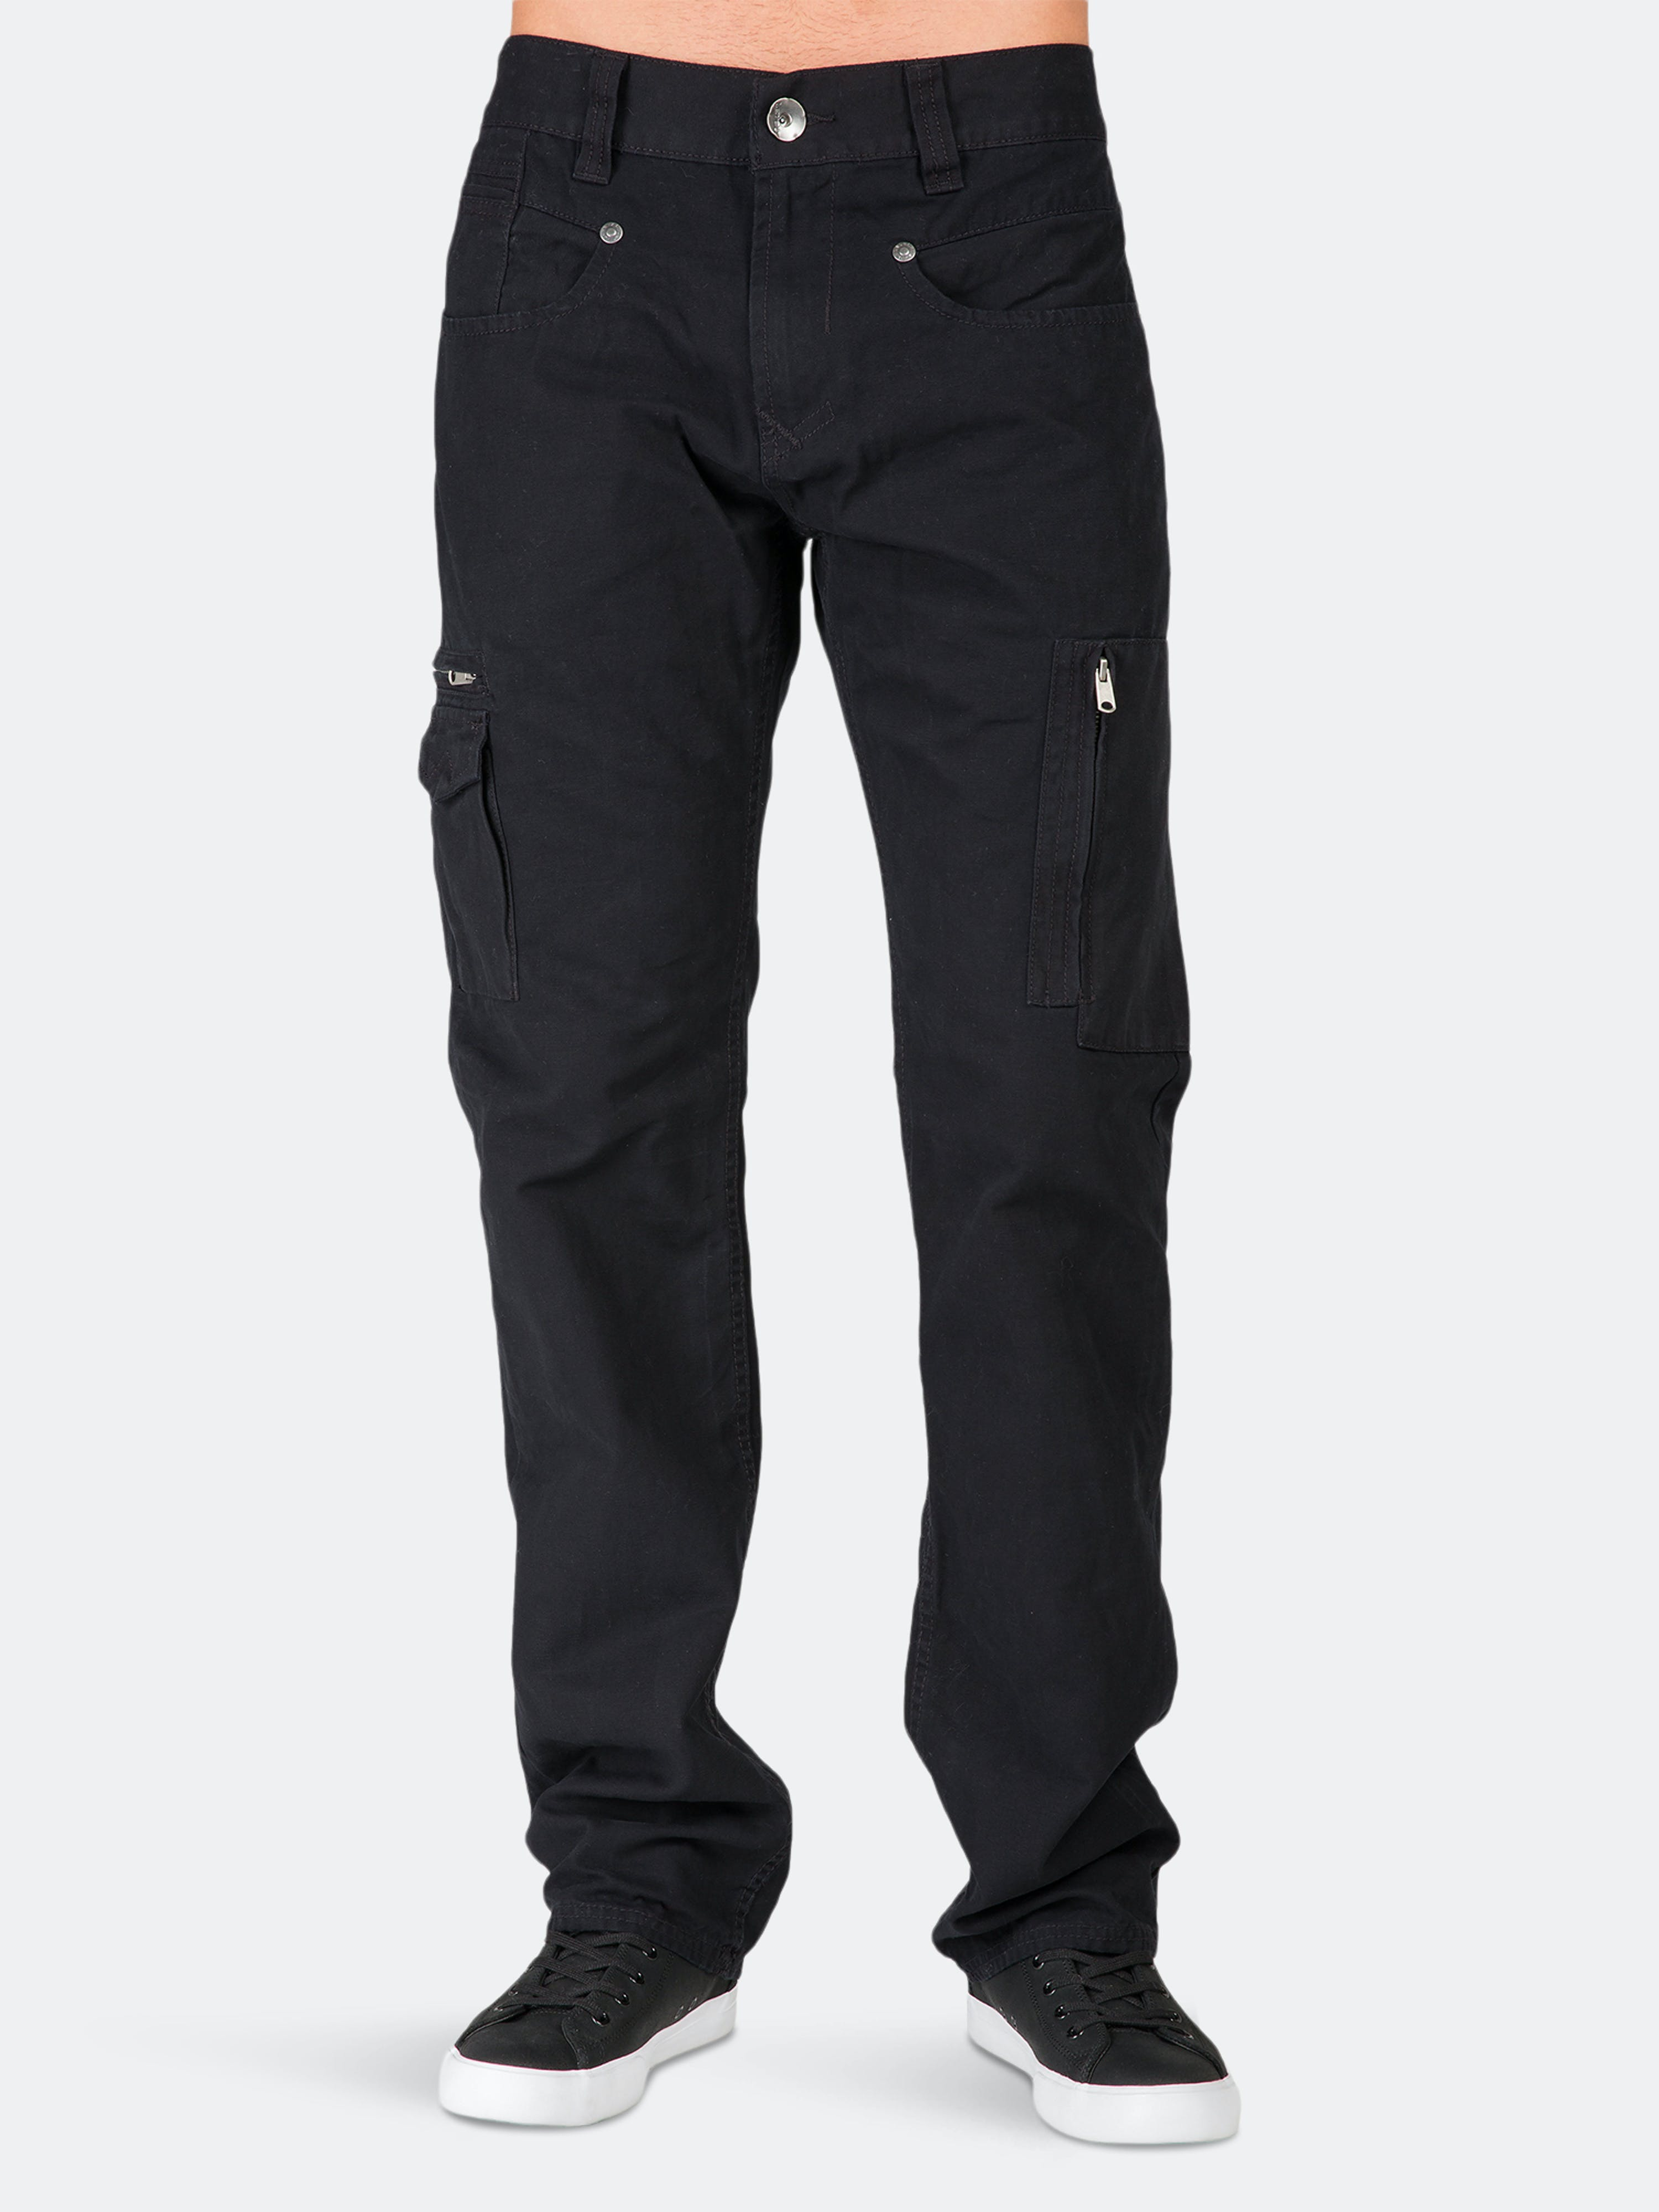 Level 7 Relaxed Straight Black Canvas Premium Jeans Zipper Cargo Pockets